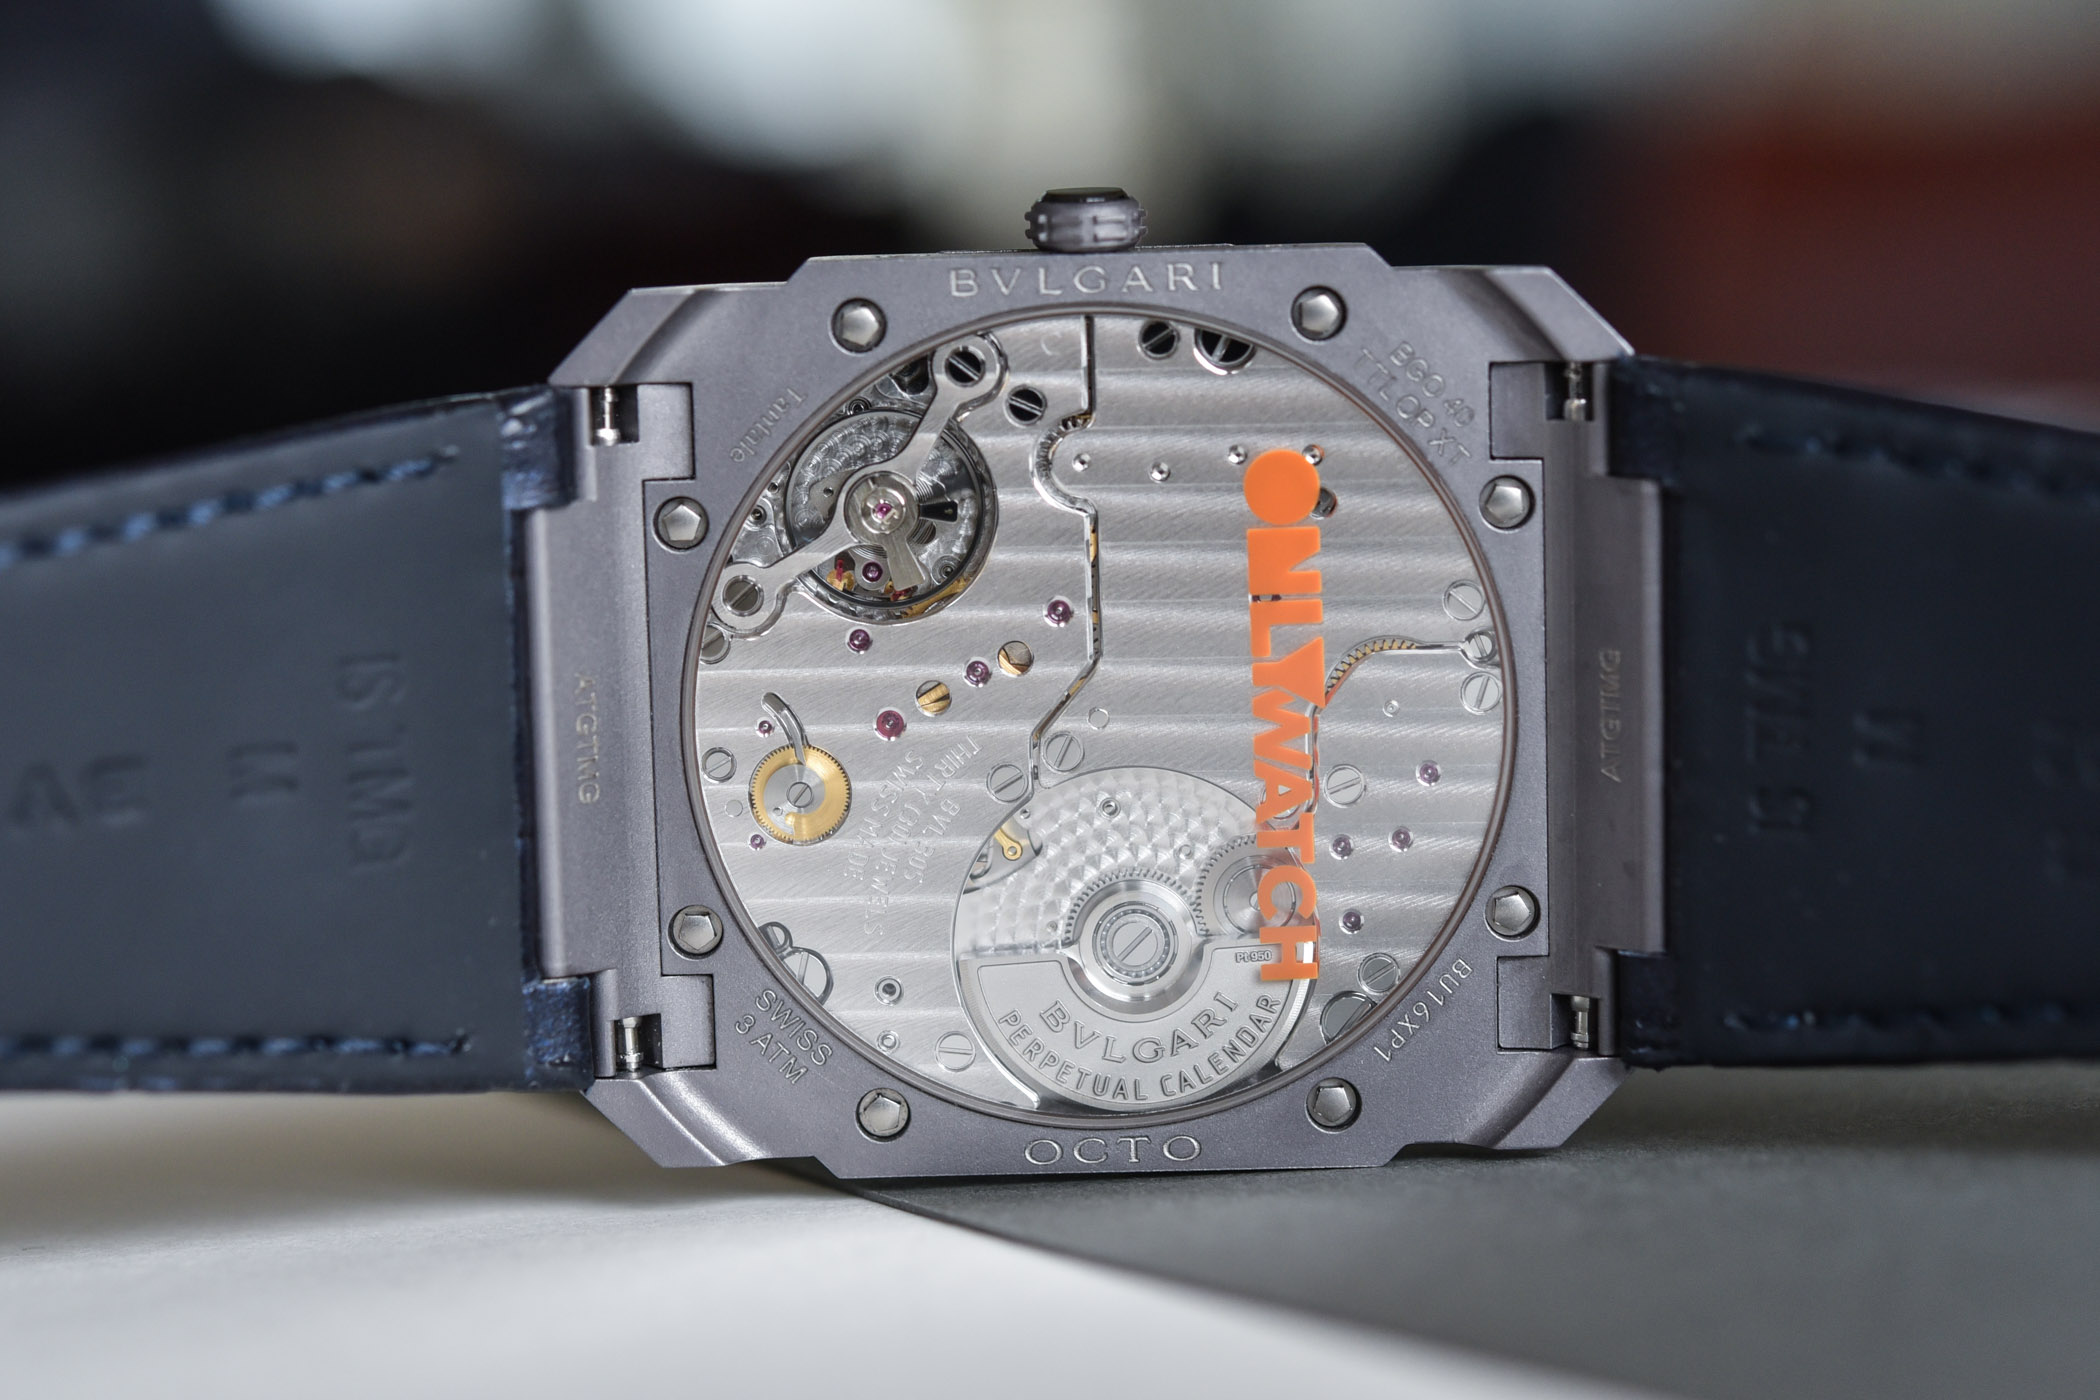 Bvlgari Octo Finissimo Perpetual Calendar Tantalum for Only Watch 2021